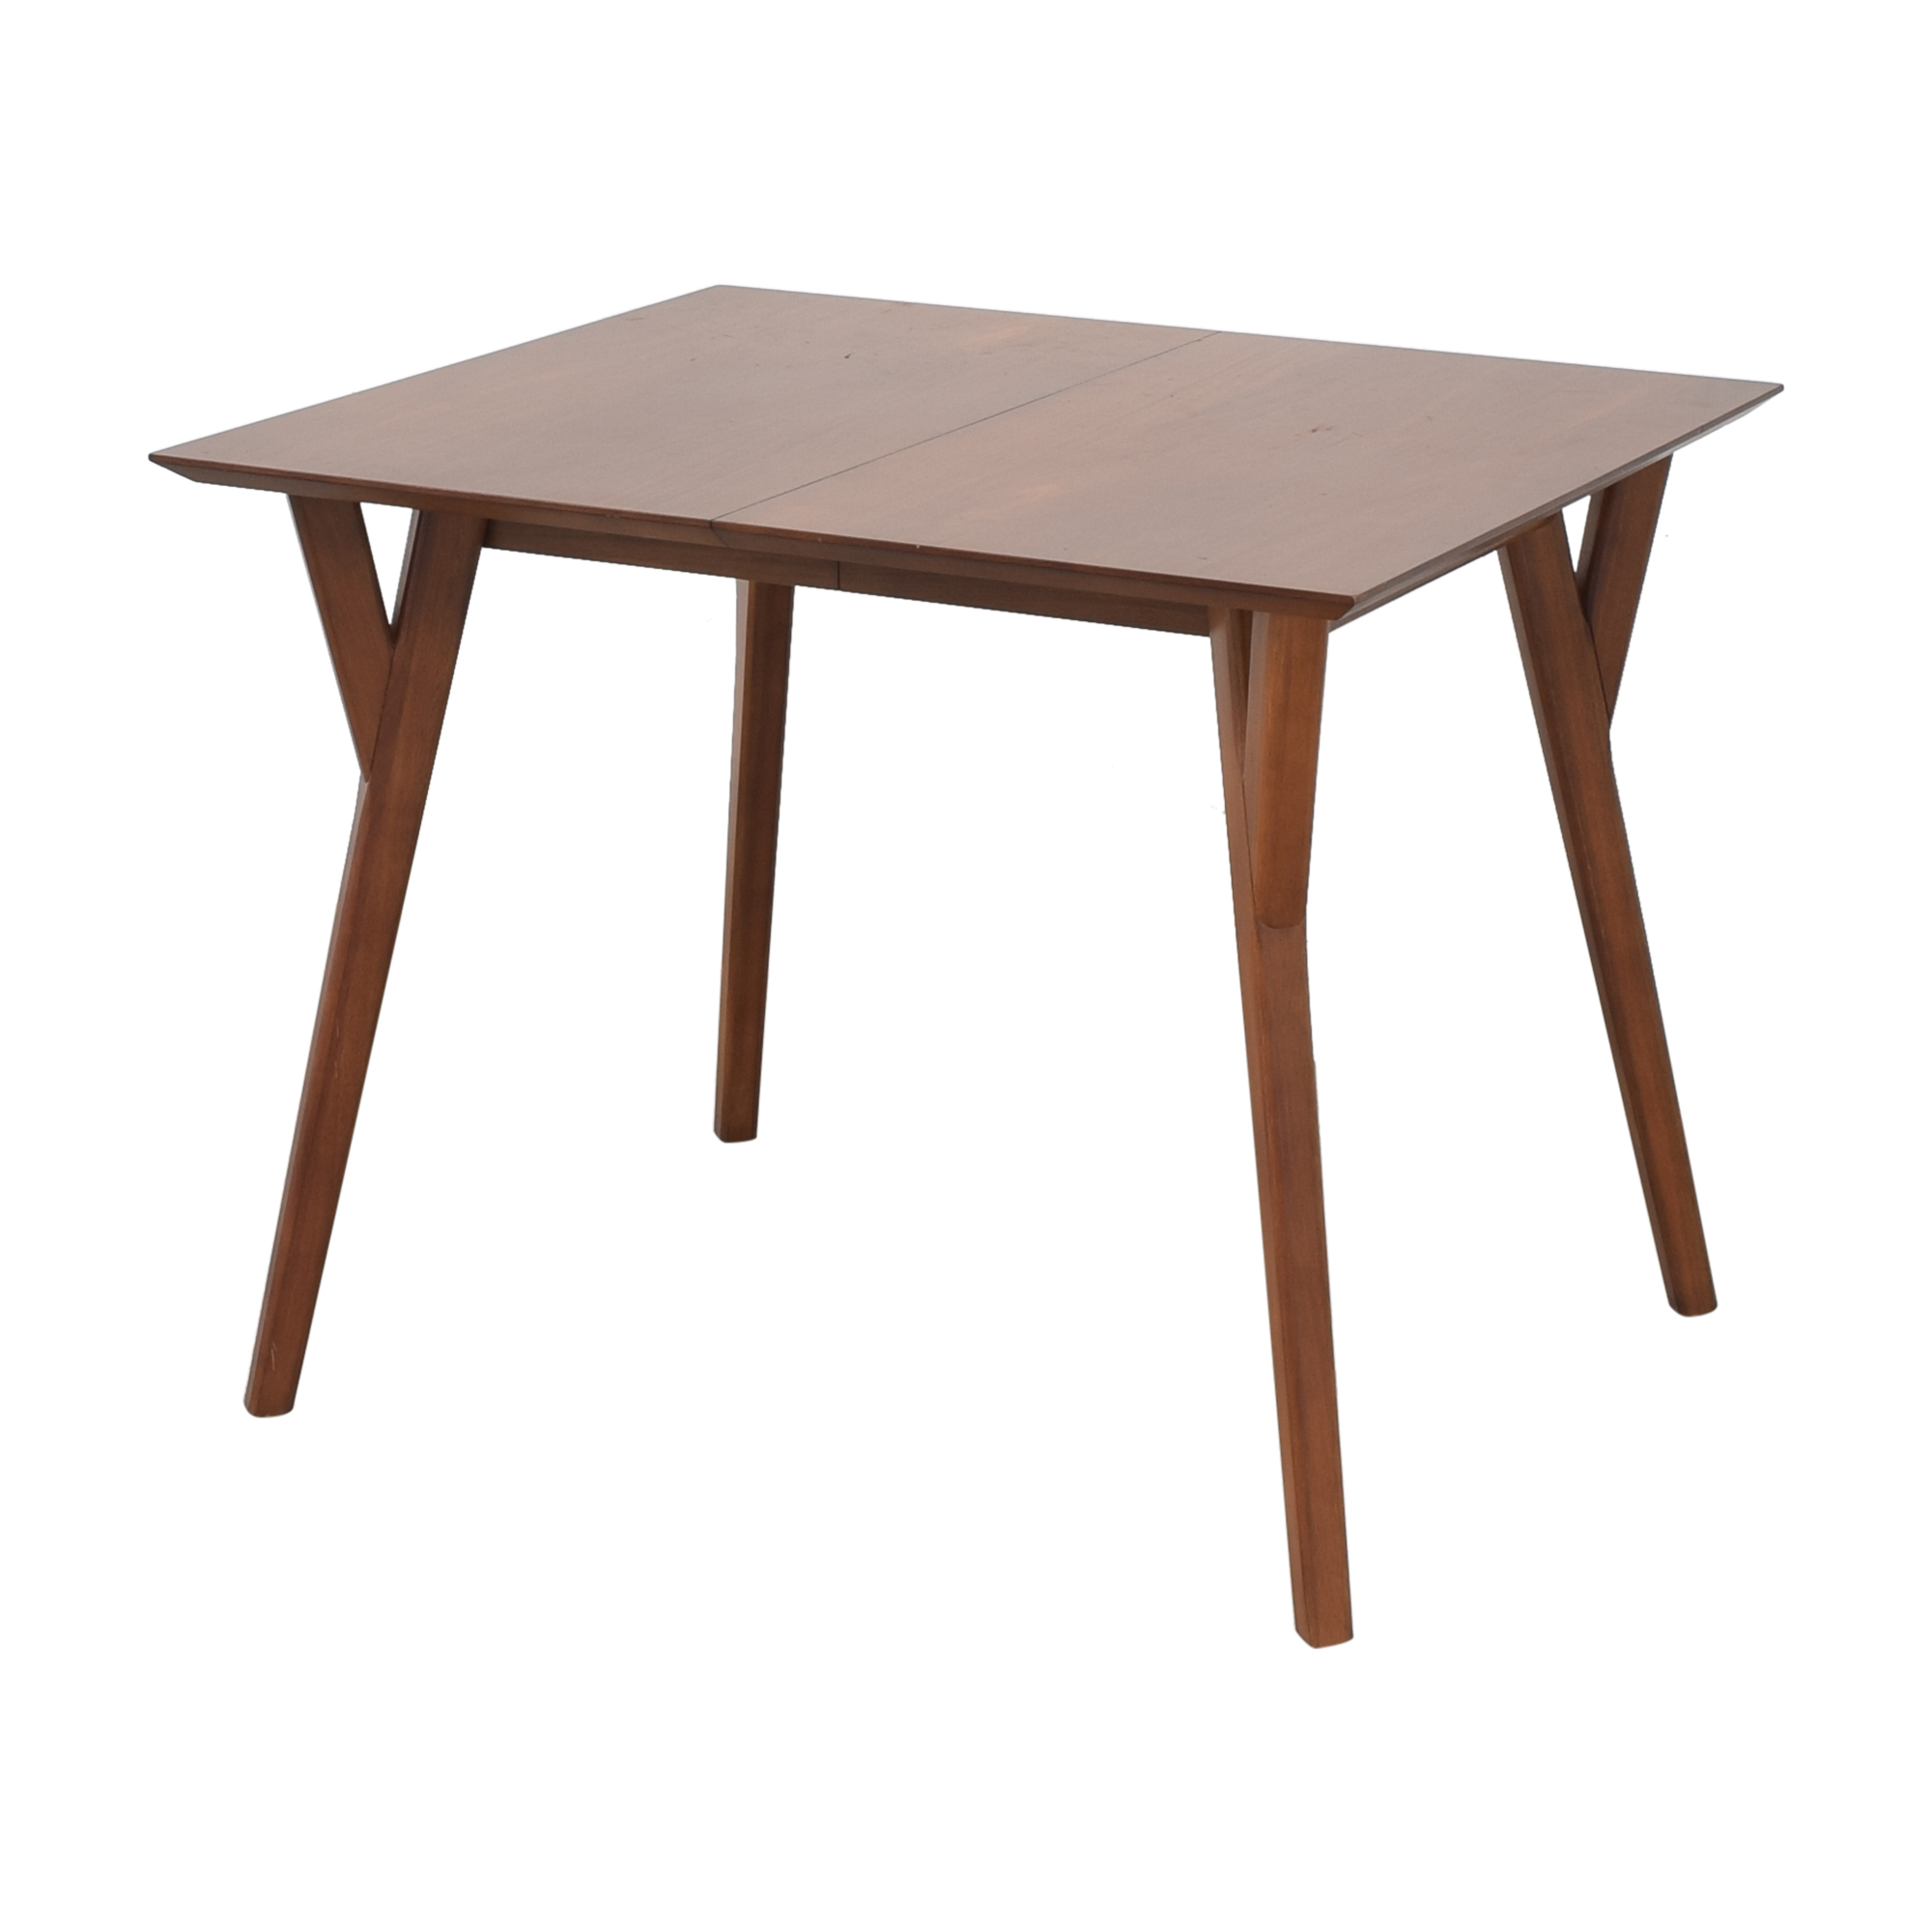 West Elm West Elm Mid Century Expandable Dining Table on sale